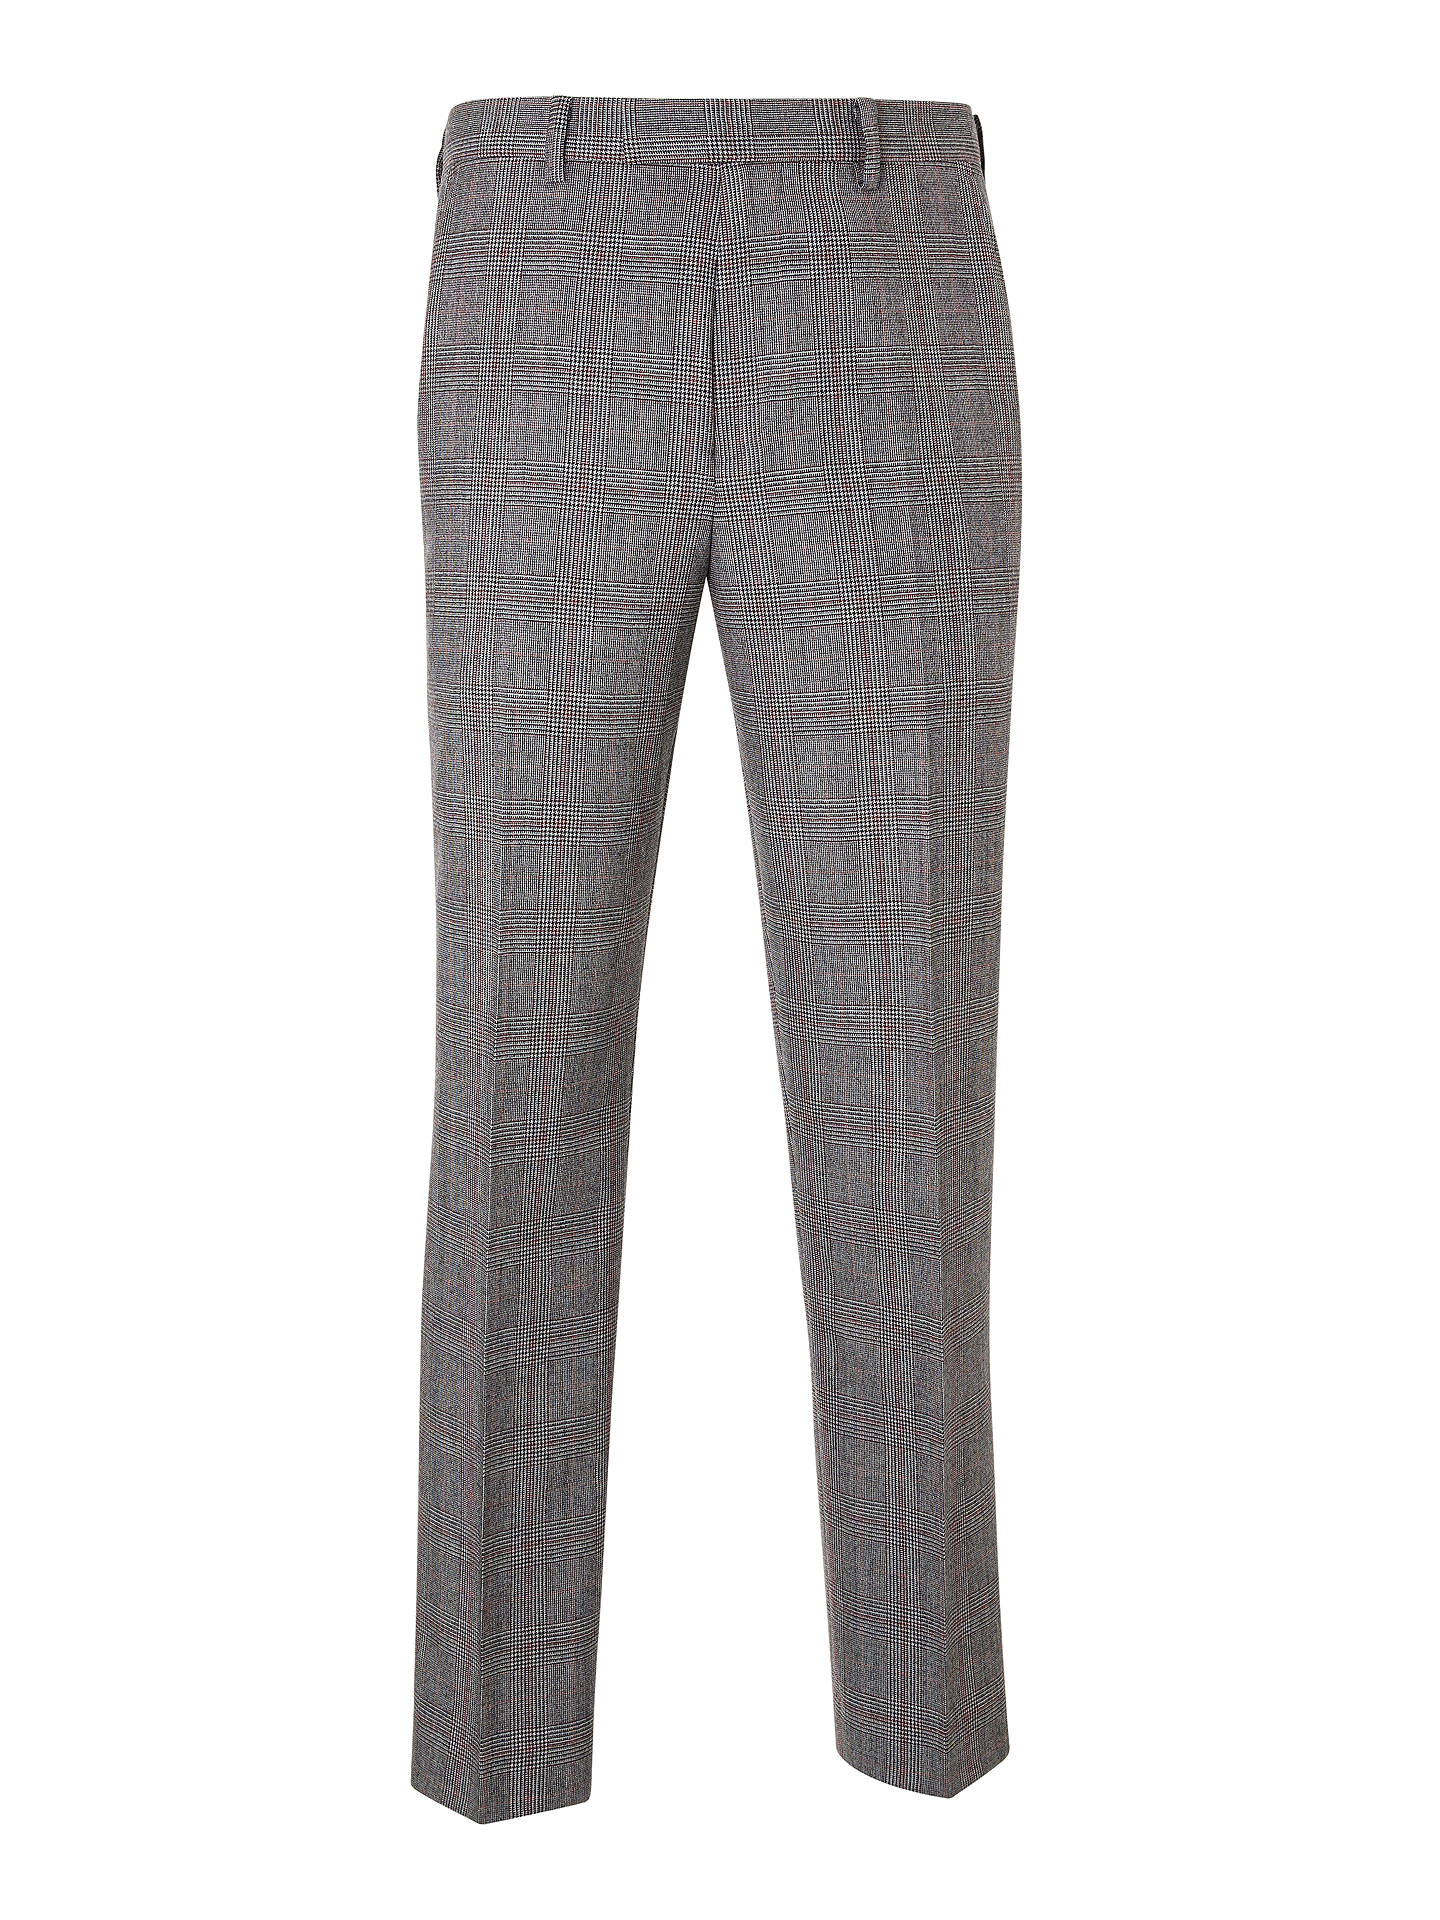 BuyJohn Lewis & Partners Check Regular Trousers, Black/White/Red, 32S Online at johnlewis.com